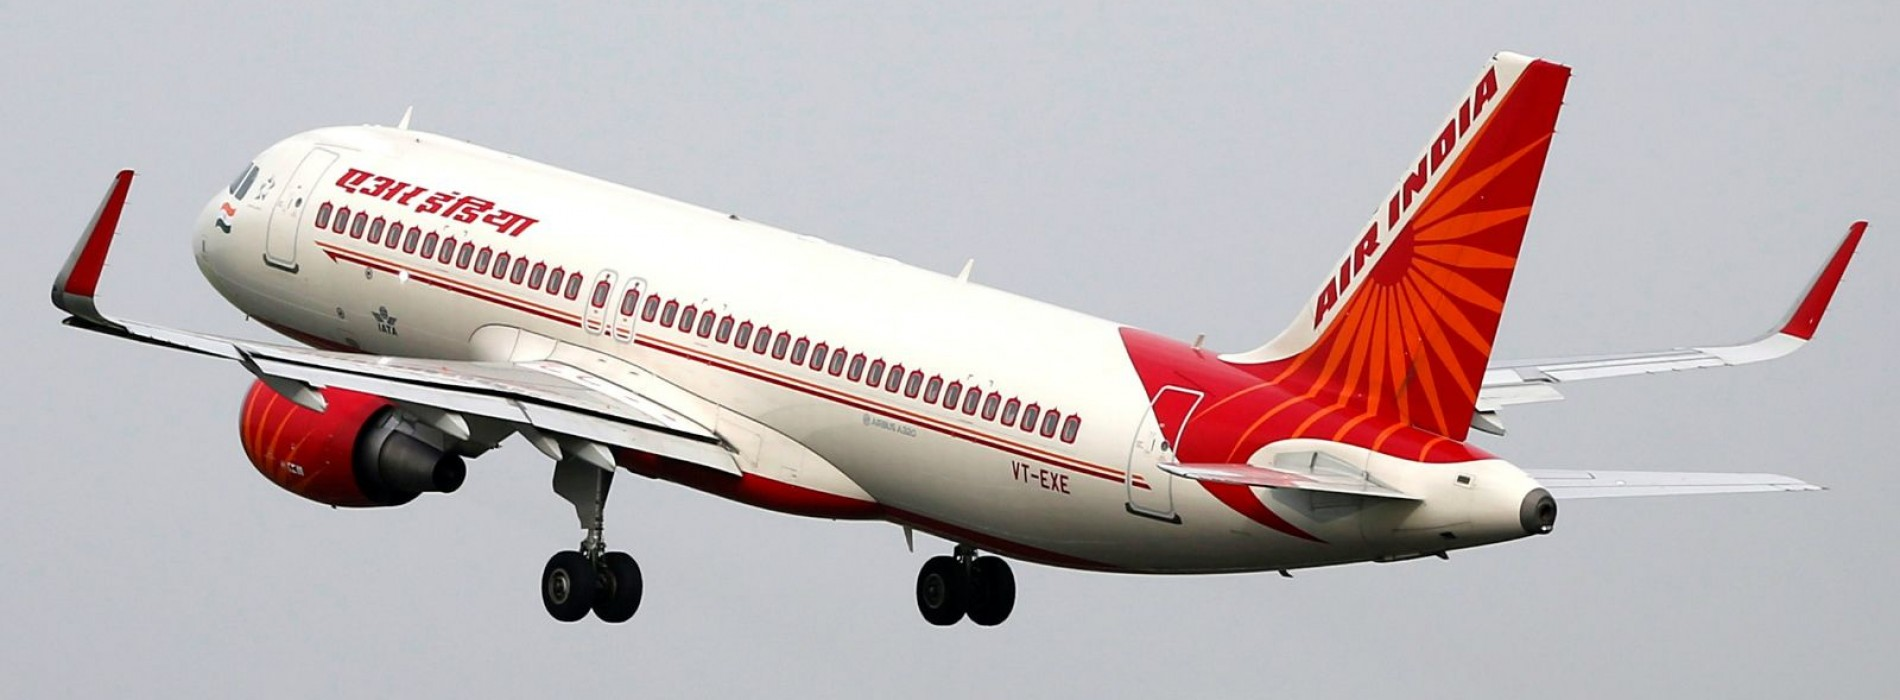 Air India to increase New Delhi-Tel Aviv flight frequency